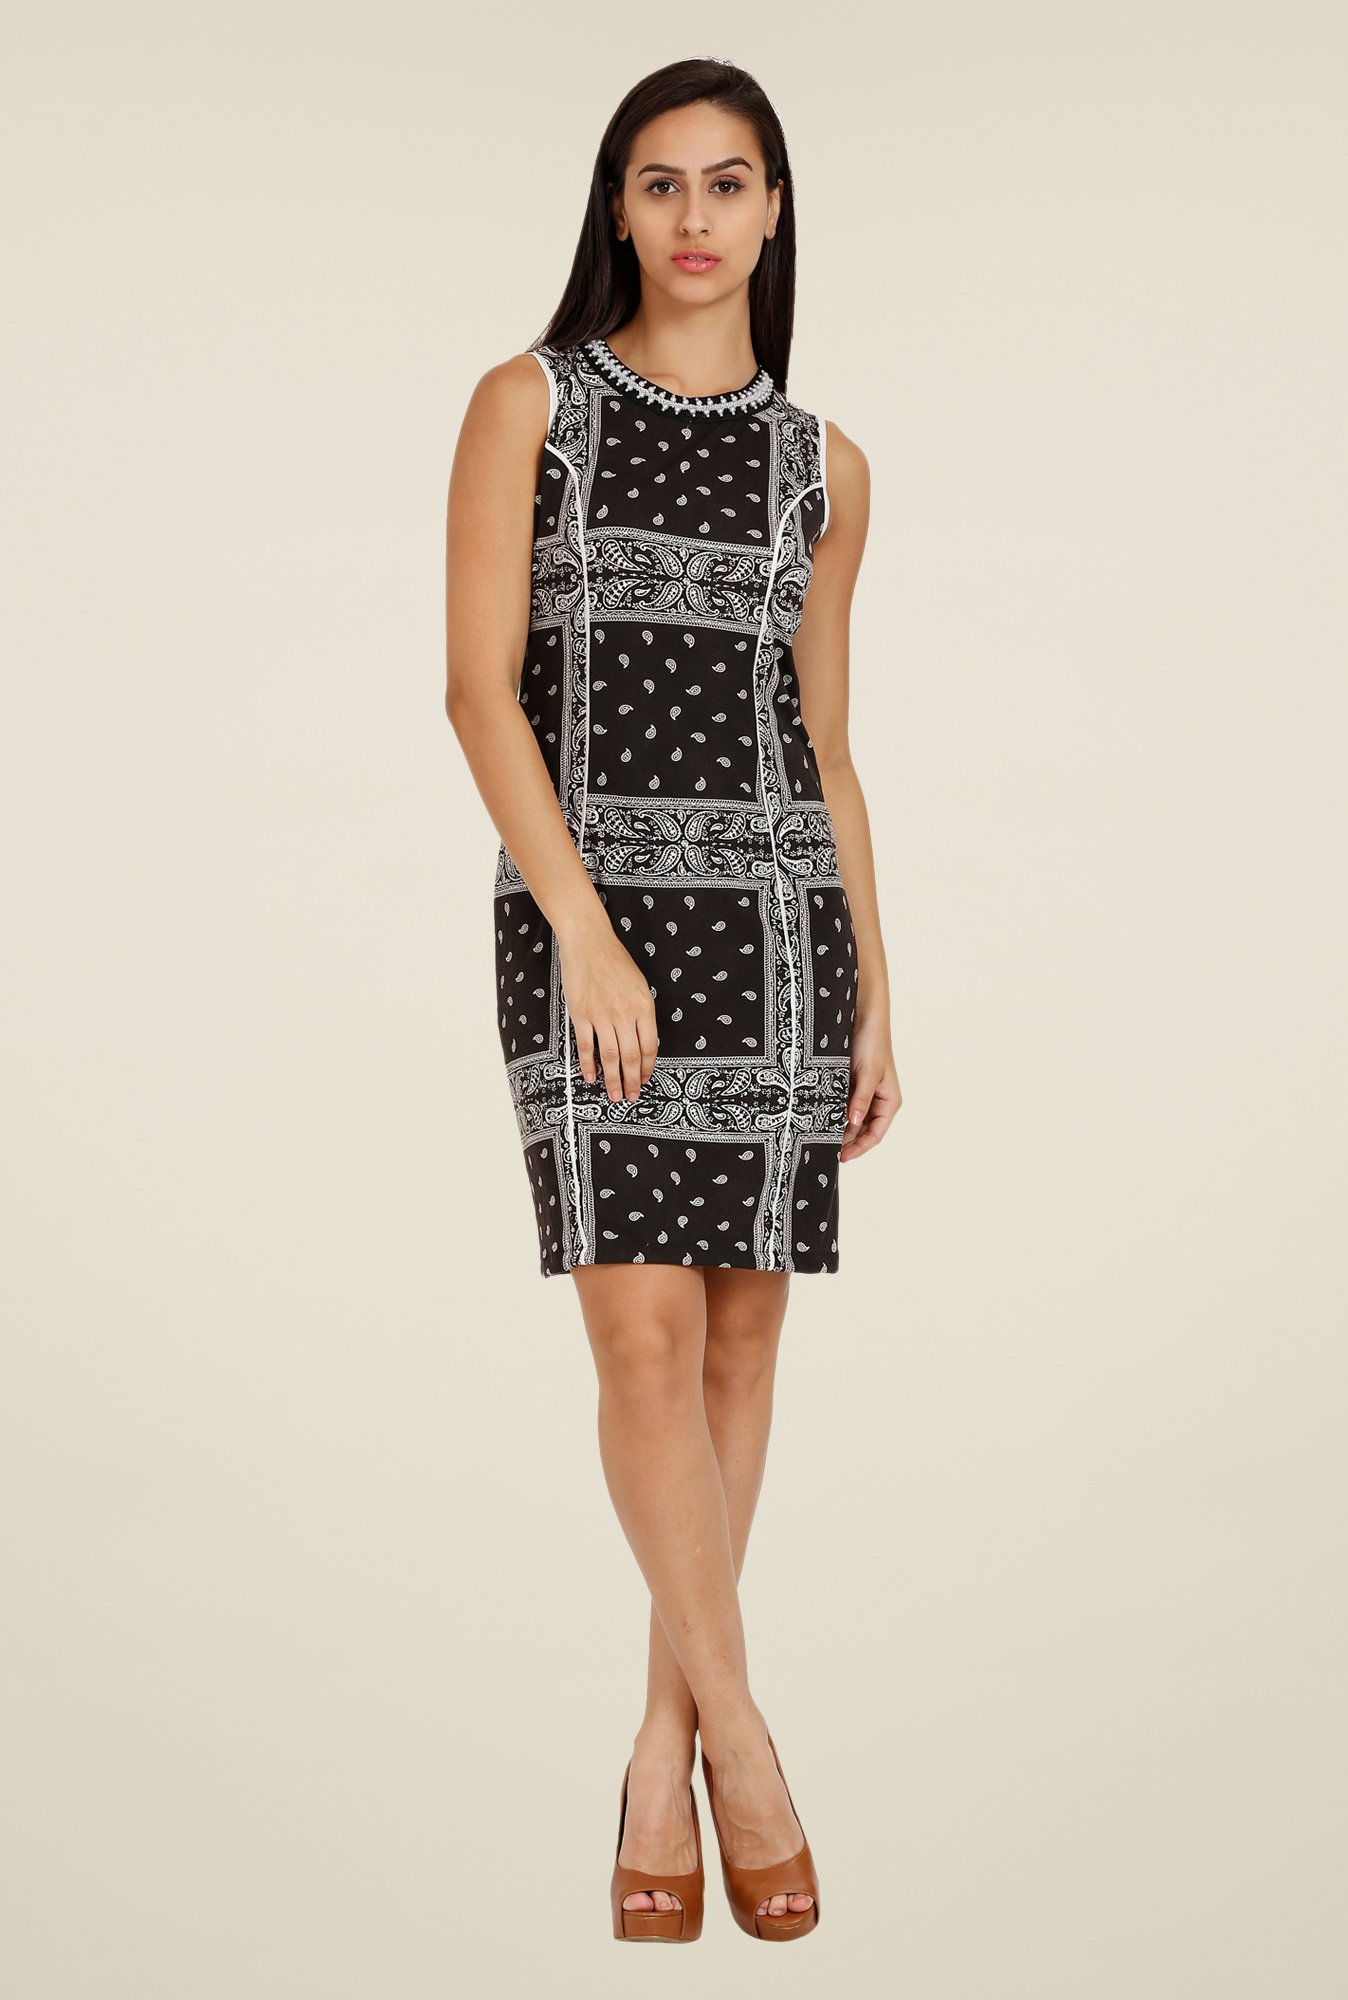 Forever Fashion Black Printed Dress